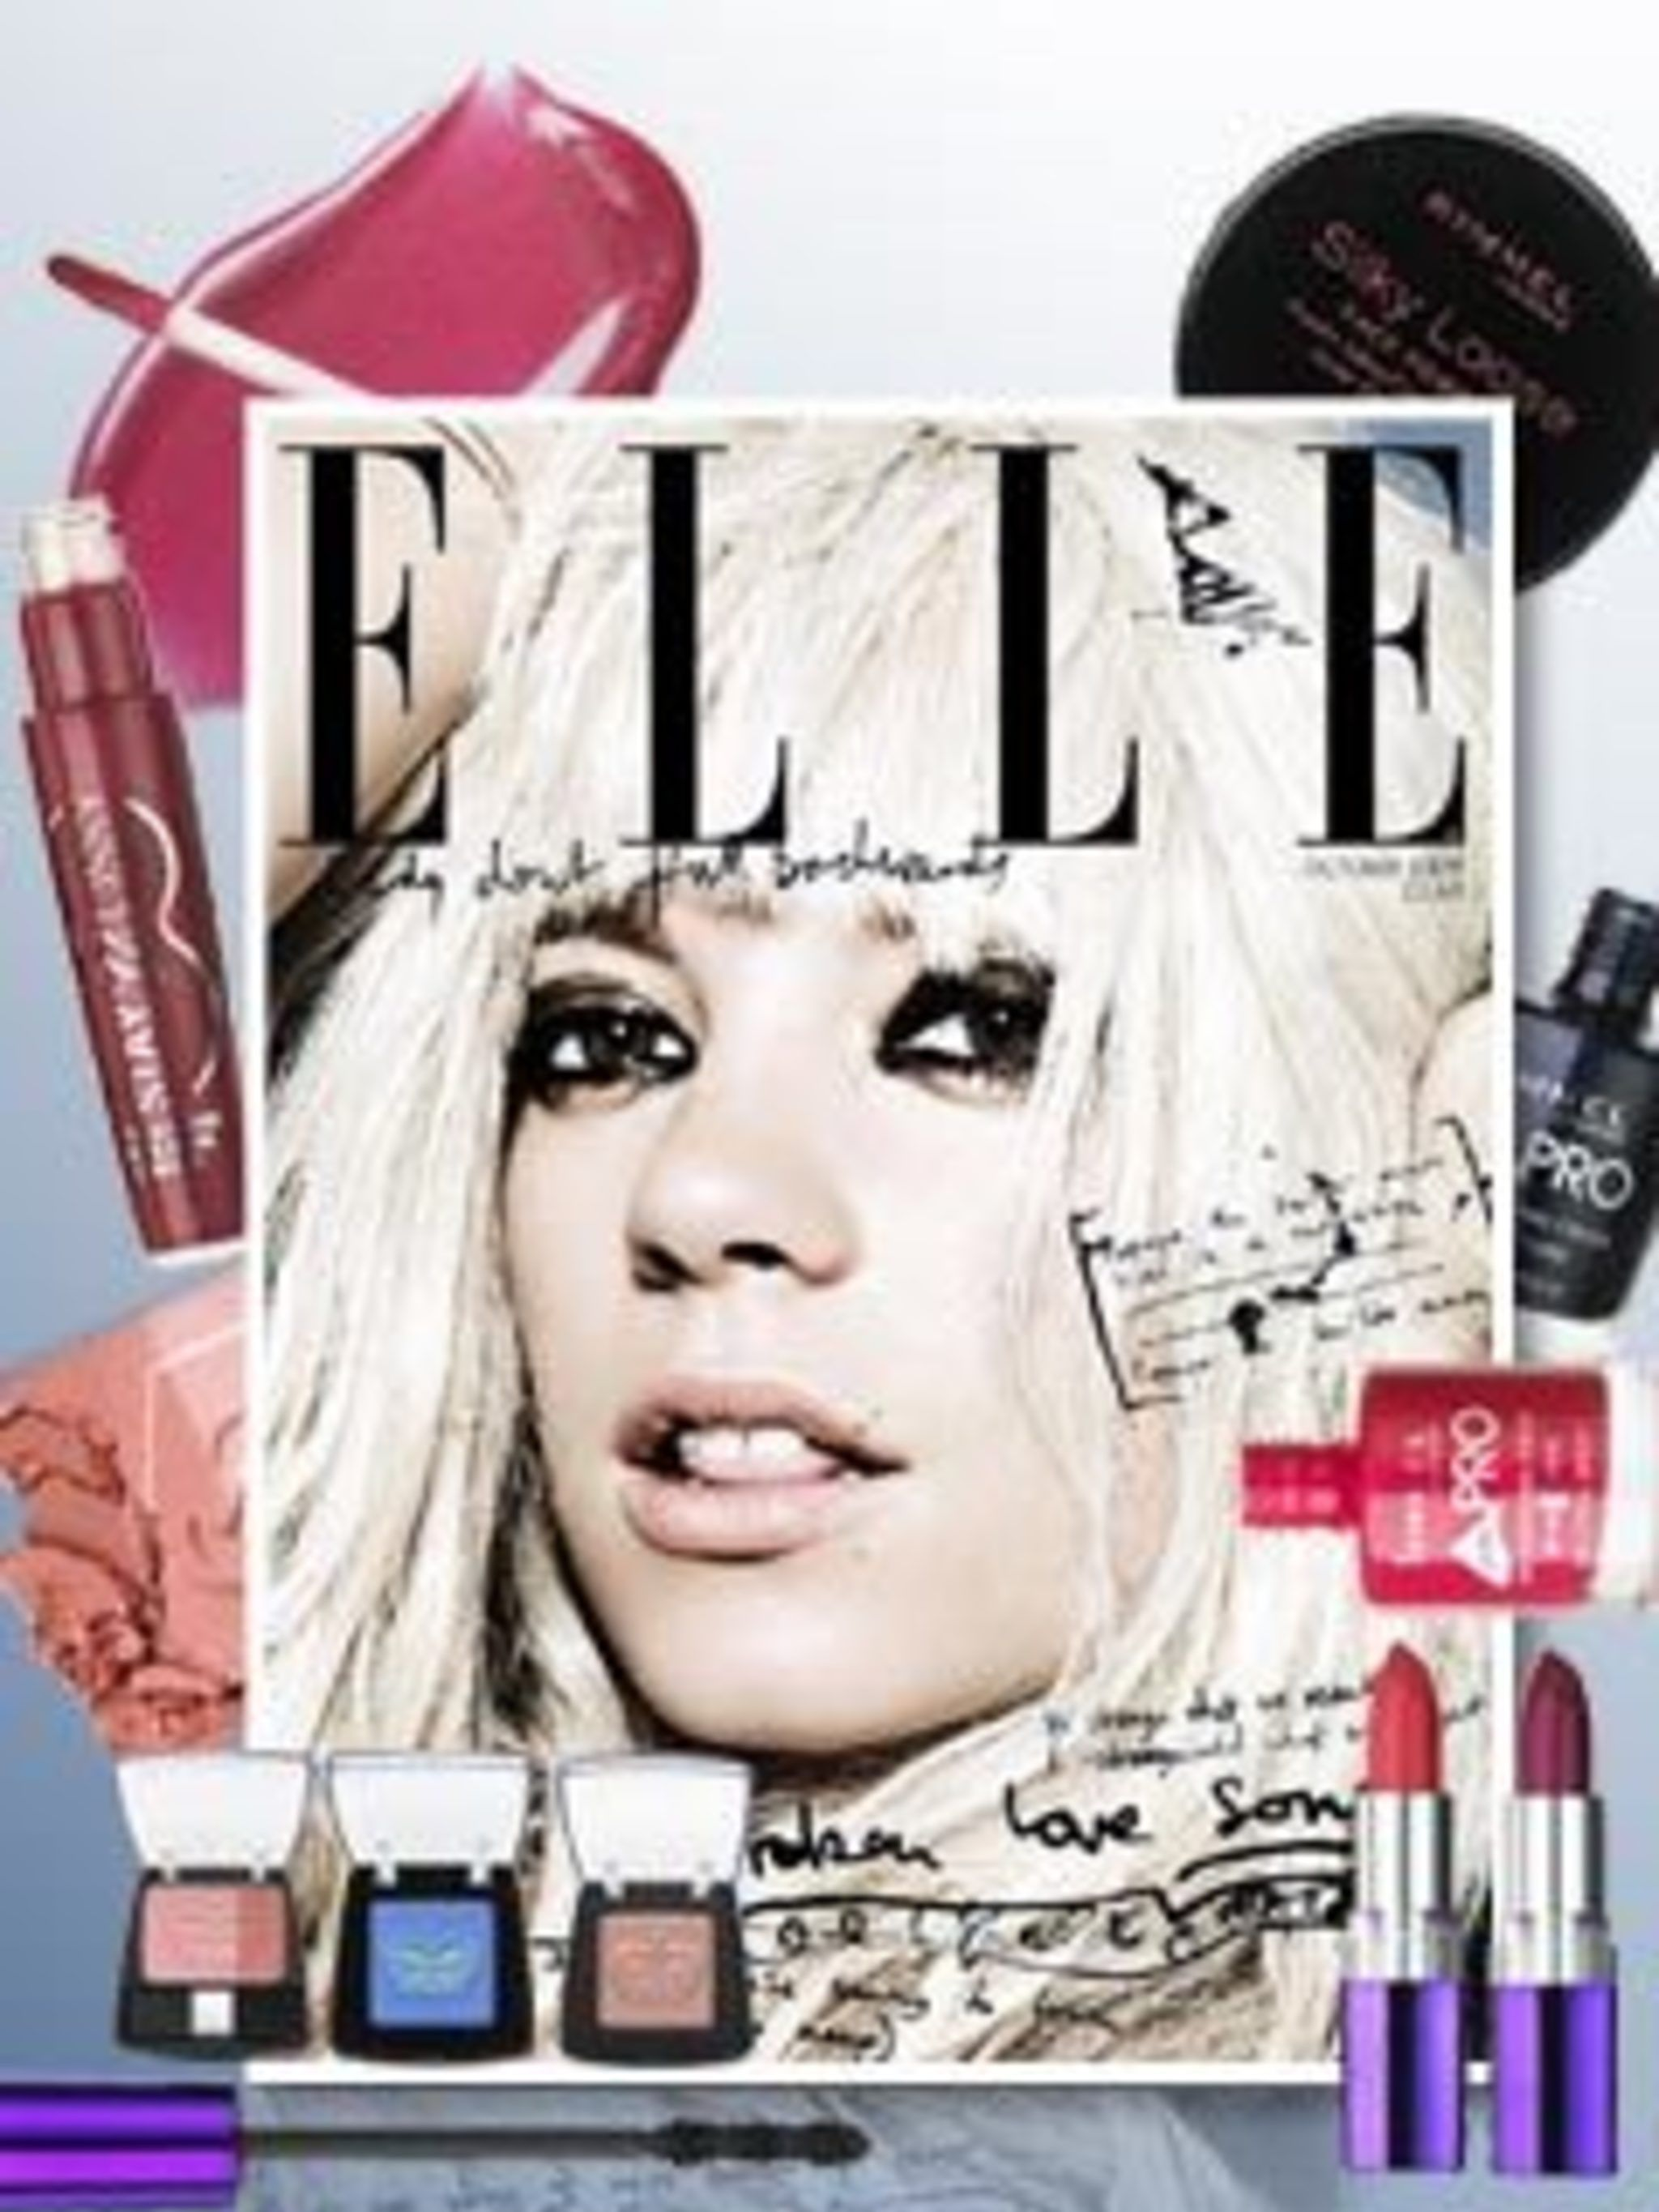 Subscribe to ELLE today for your chance to revamp your make-up bag and save money.   Every subscriber to ELLE magazine this mon